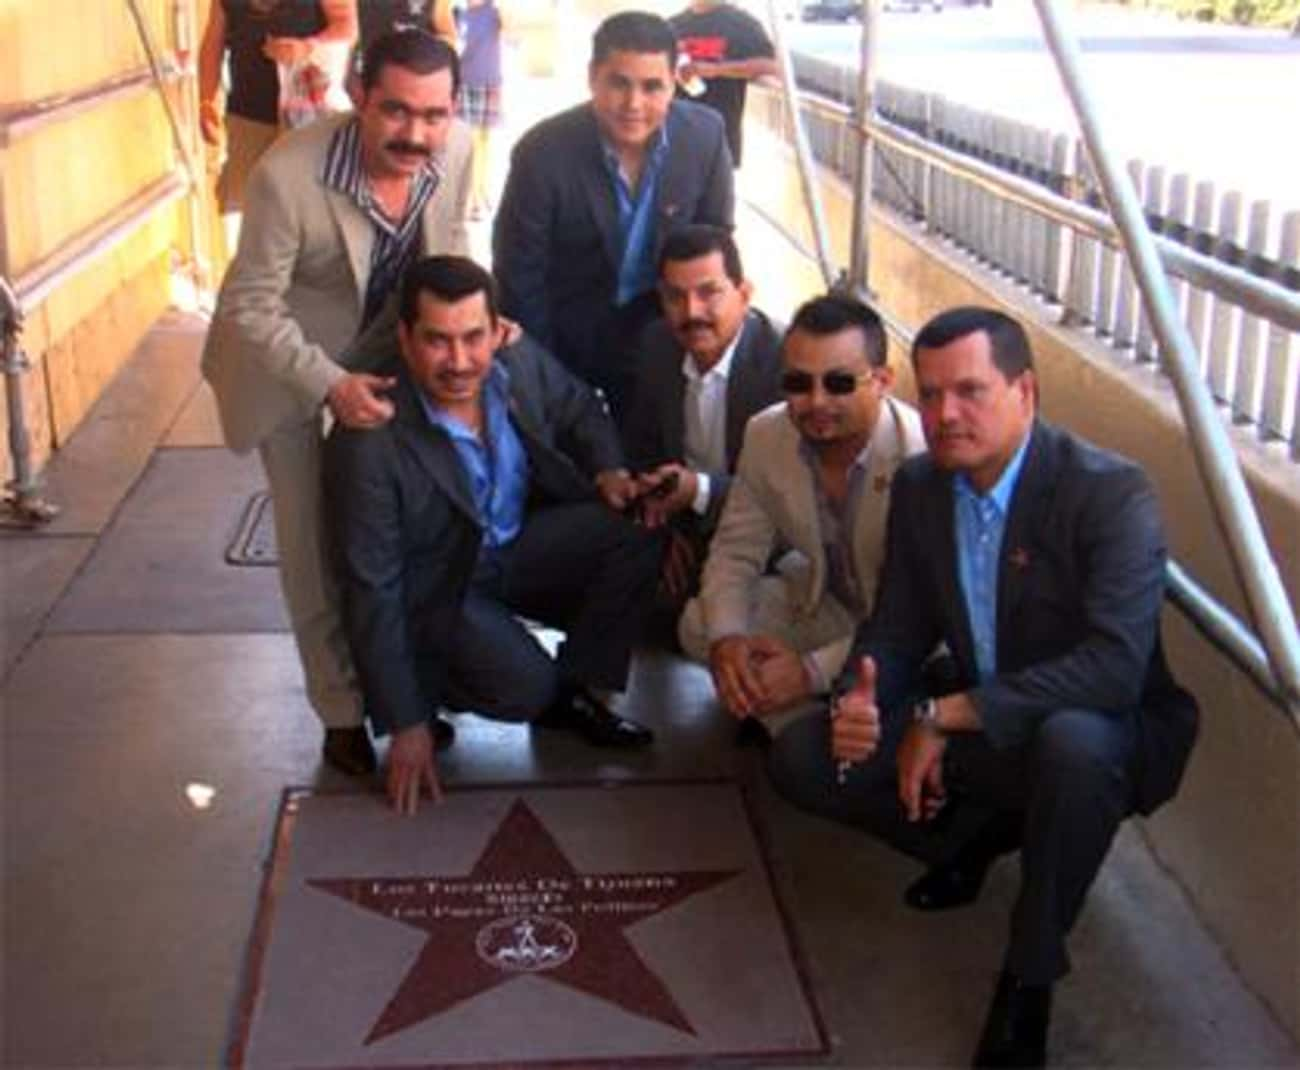 Los Tucanes de Tijuana is listed (or ranked) 4 on the list The Best Banda Bands/Artists